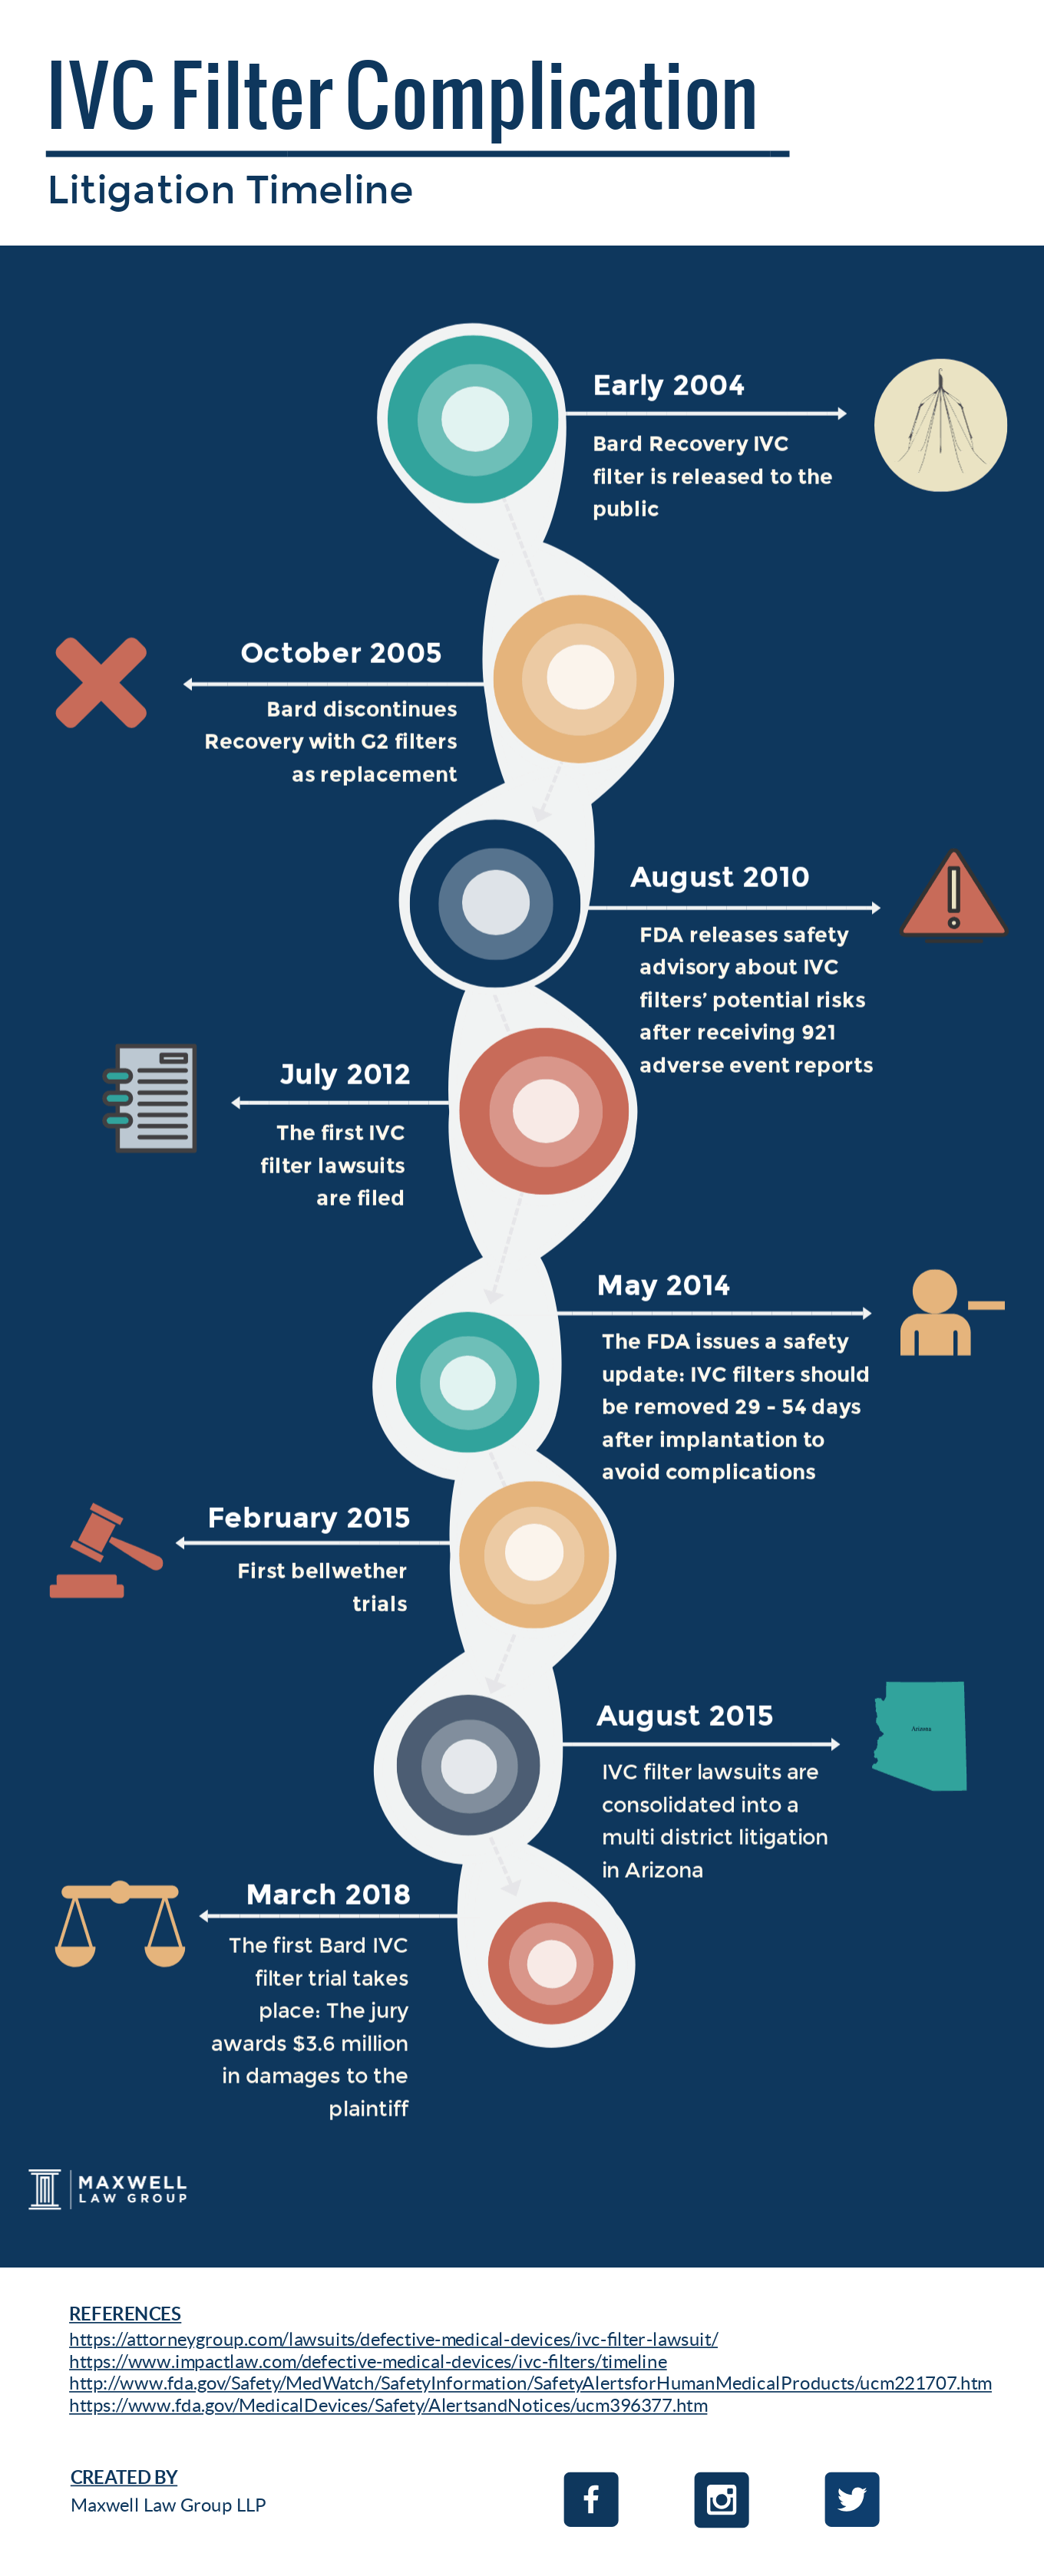 IVC filter litigation timeline